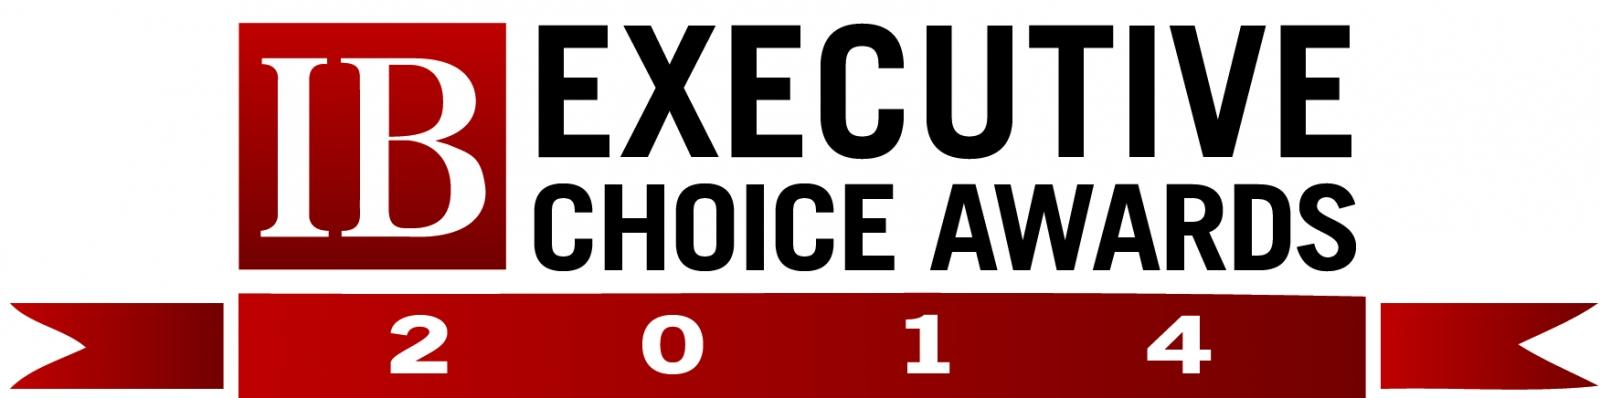 Executive Choice Award